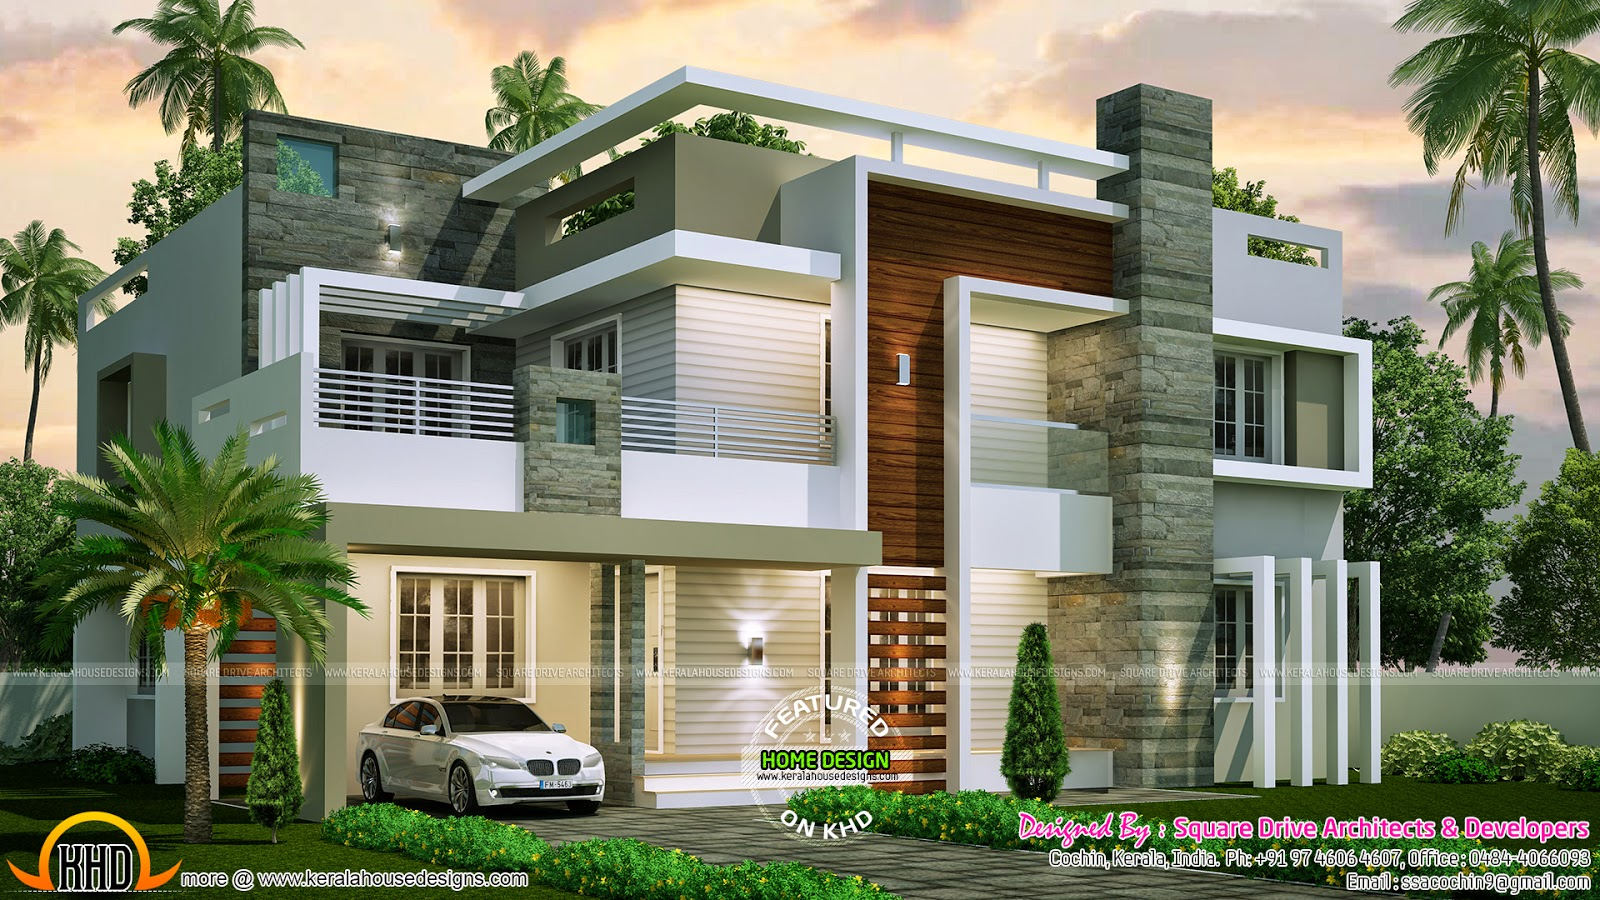 4 bedroom contemporary home design kerala home design for Contemporary home designs india